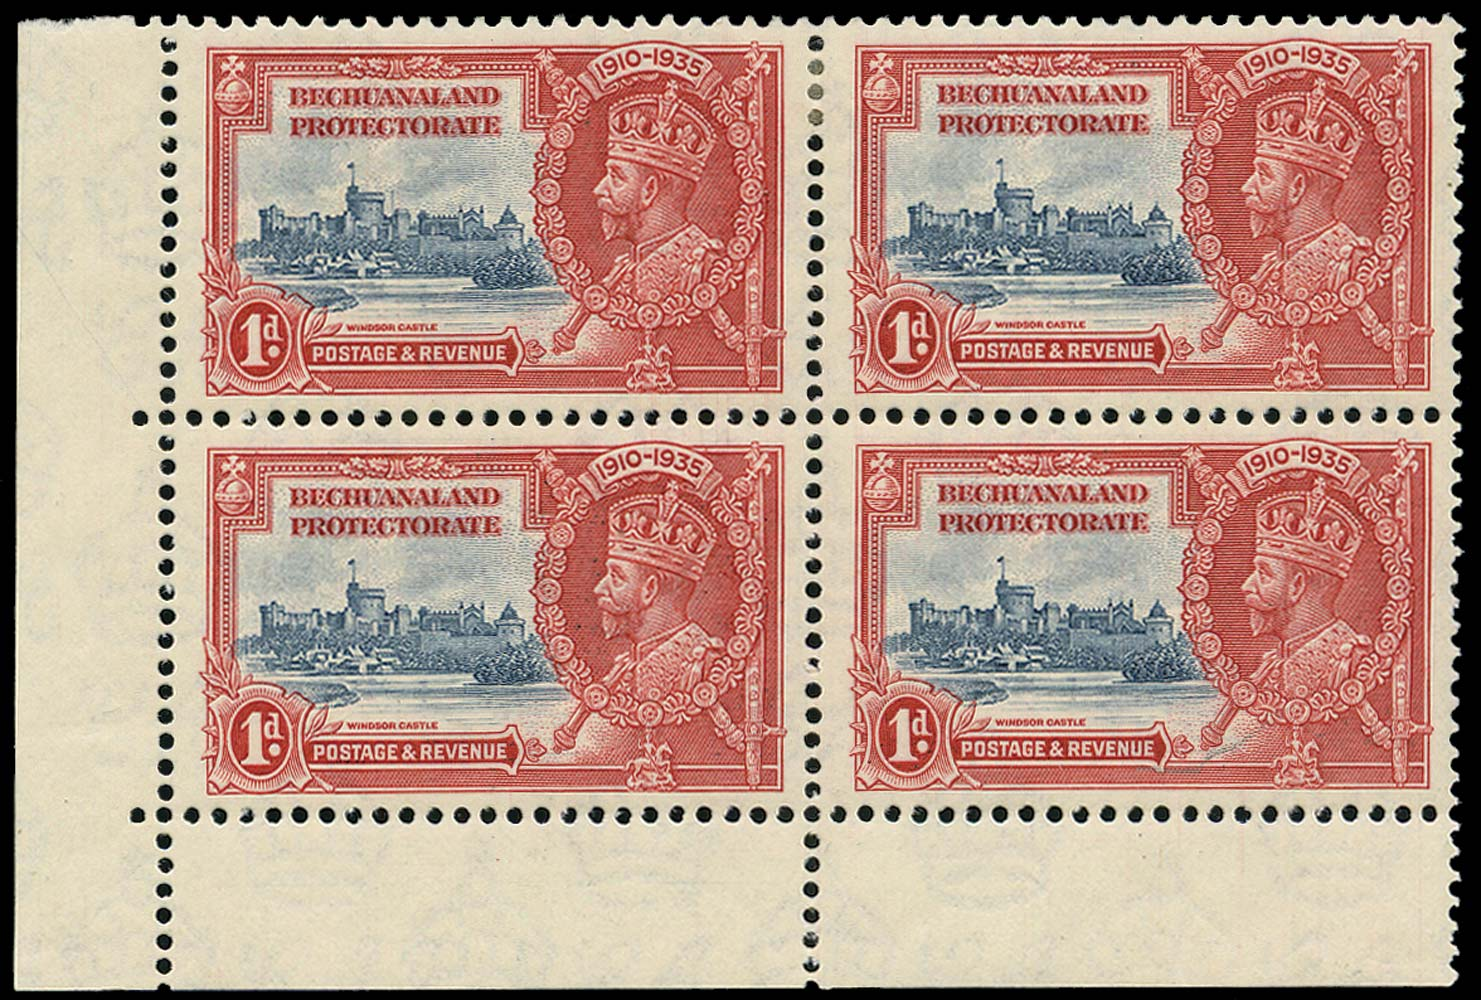 BECHUANALAND 1935  SG111/a Mint Silver Jubilee 1d with Extra Flagstaff